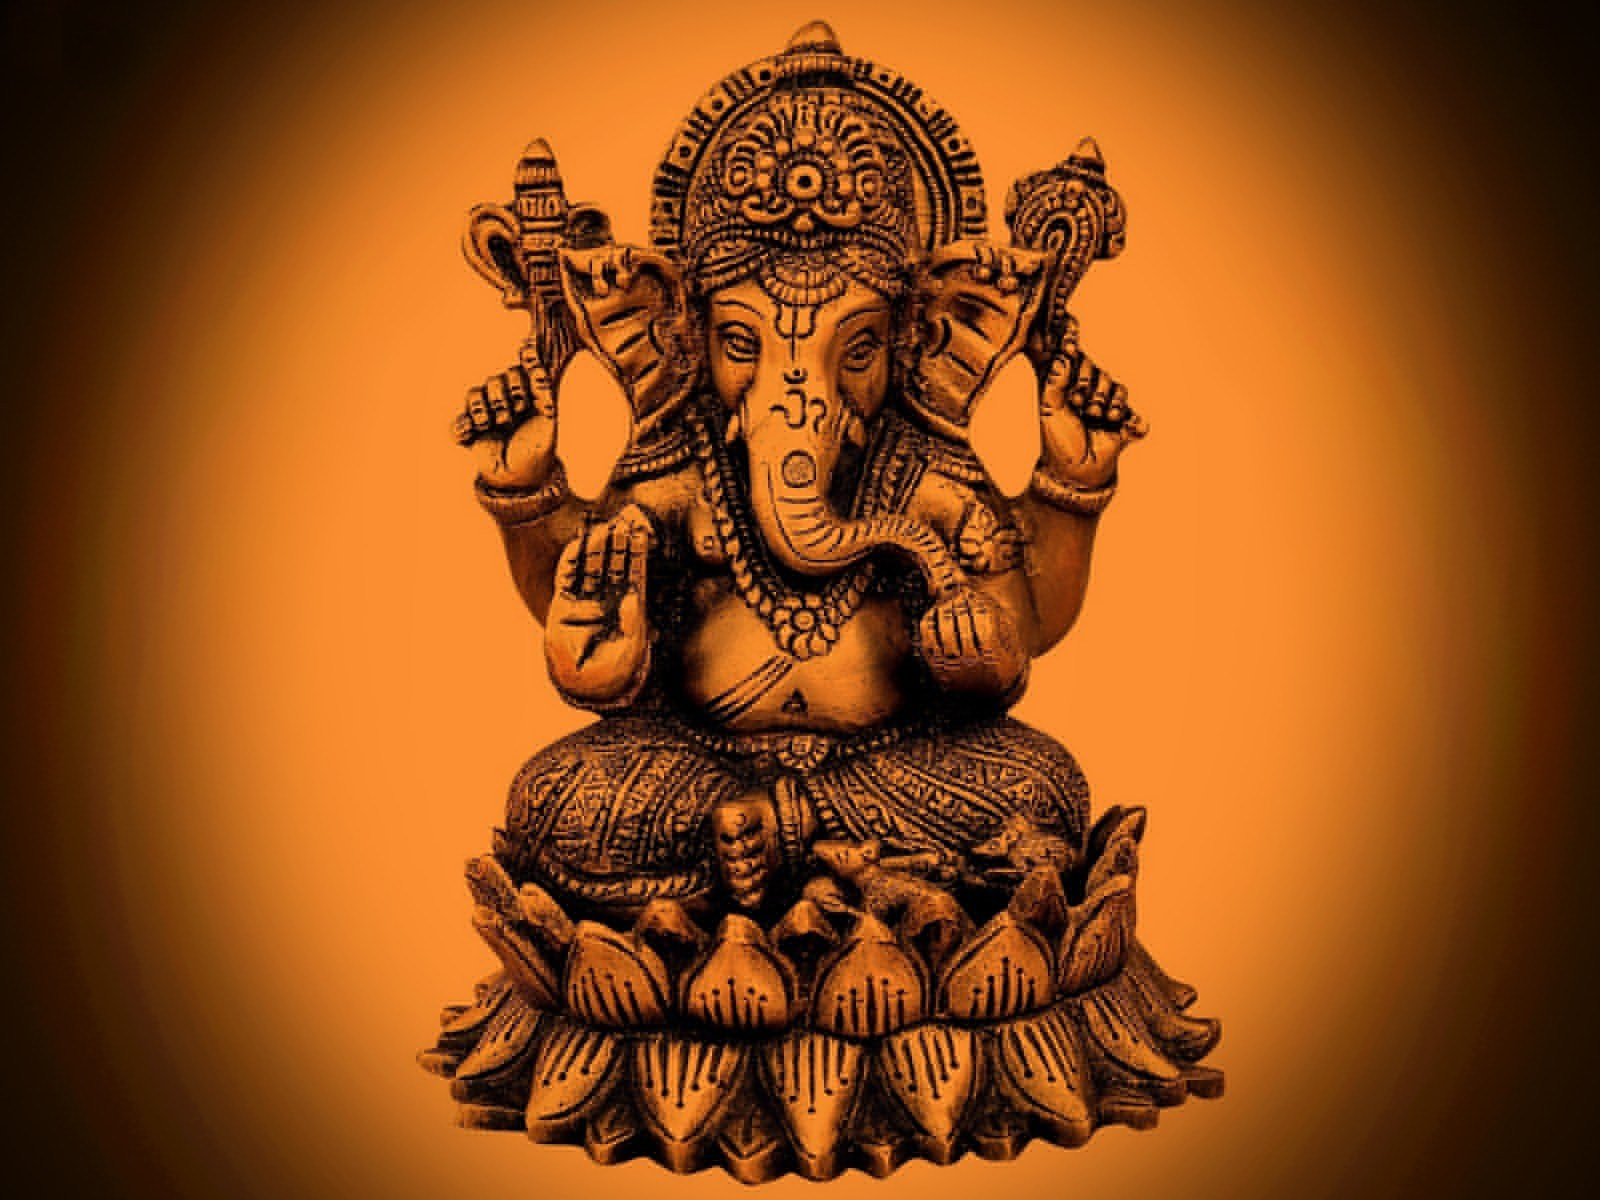 Lord Ganesha Wallpaper Gallery: Download Lord Ganesha Wallpapers Gallery